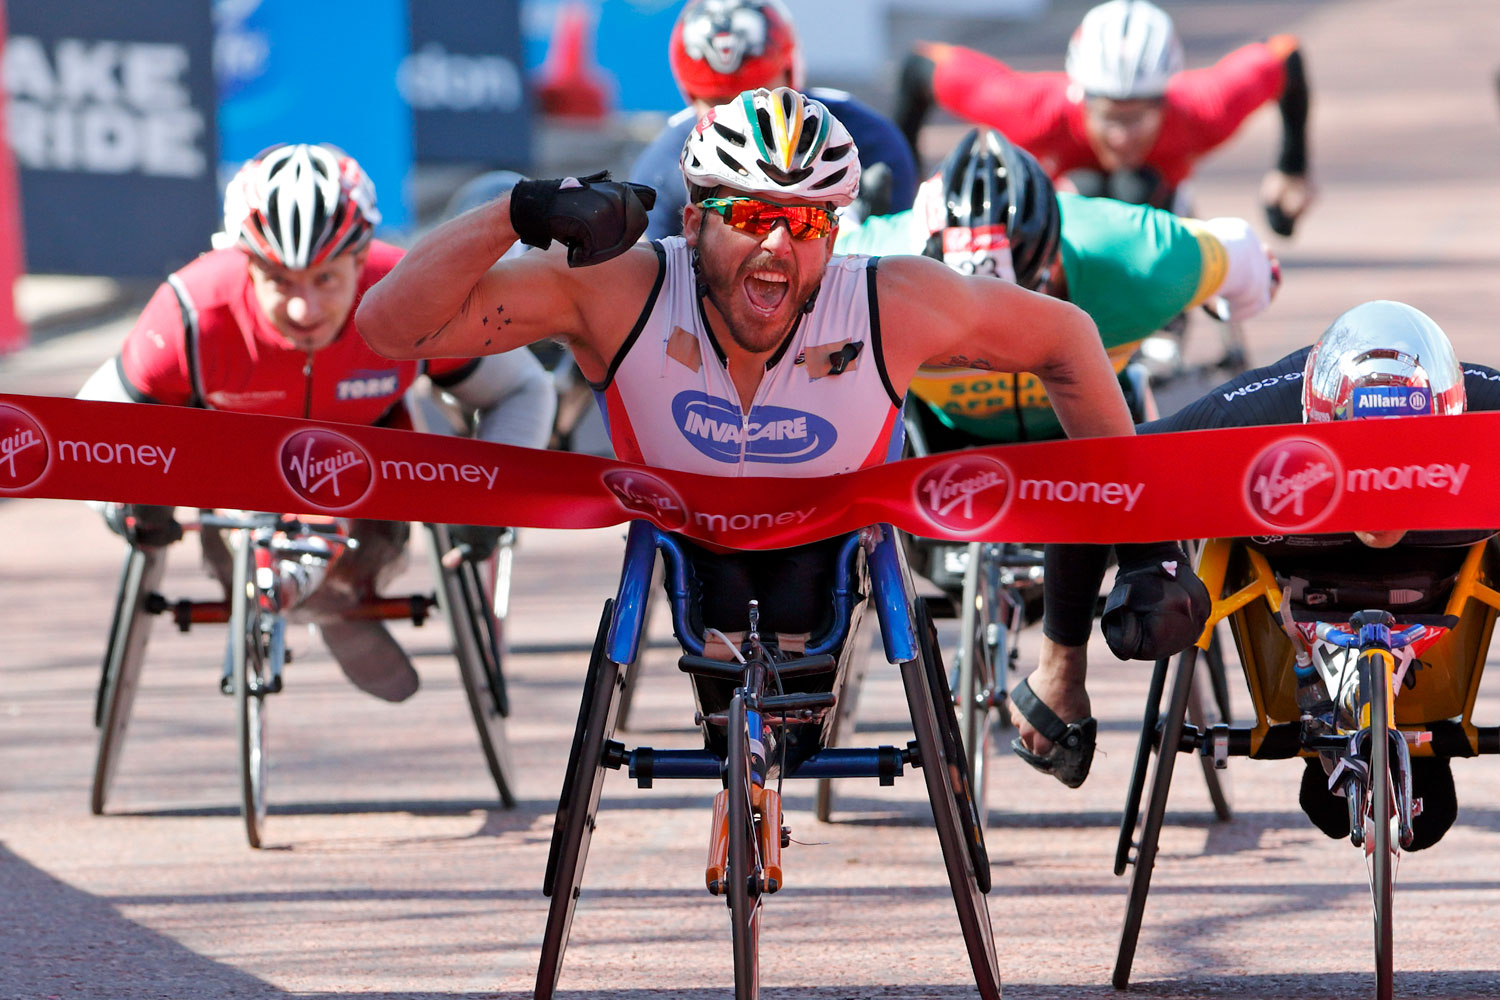 Kurt Fearnley pumps his fist as he crosses the finish line to win the men's wheelchair race at the Virgin London Marathon 2013.